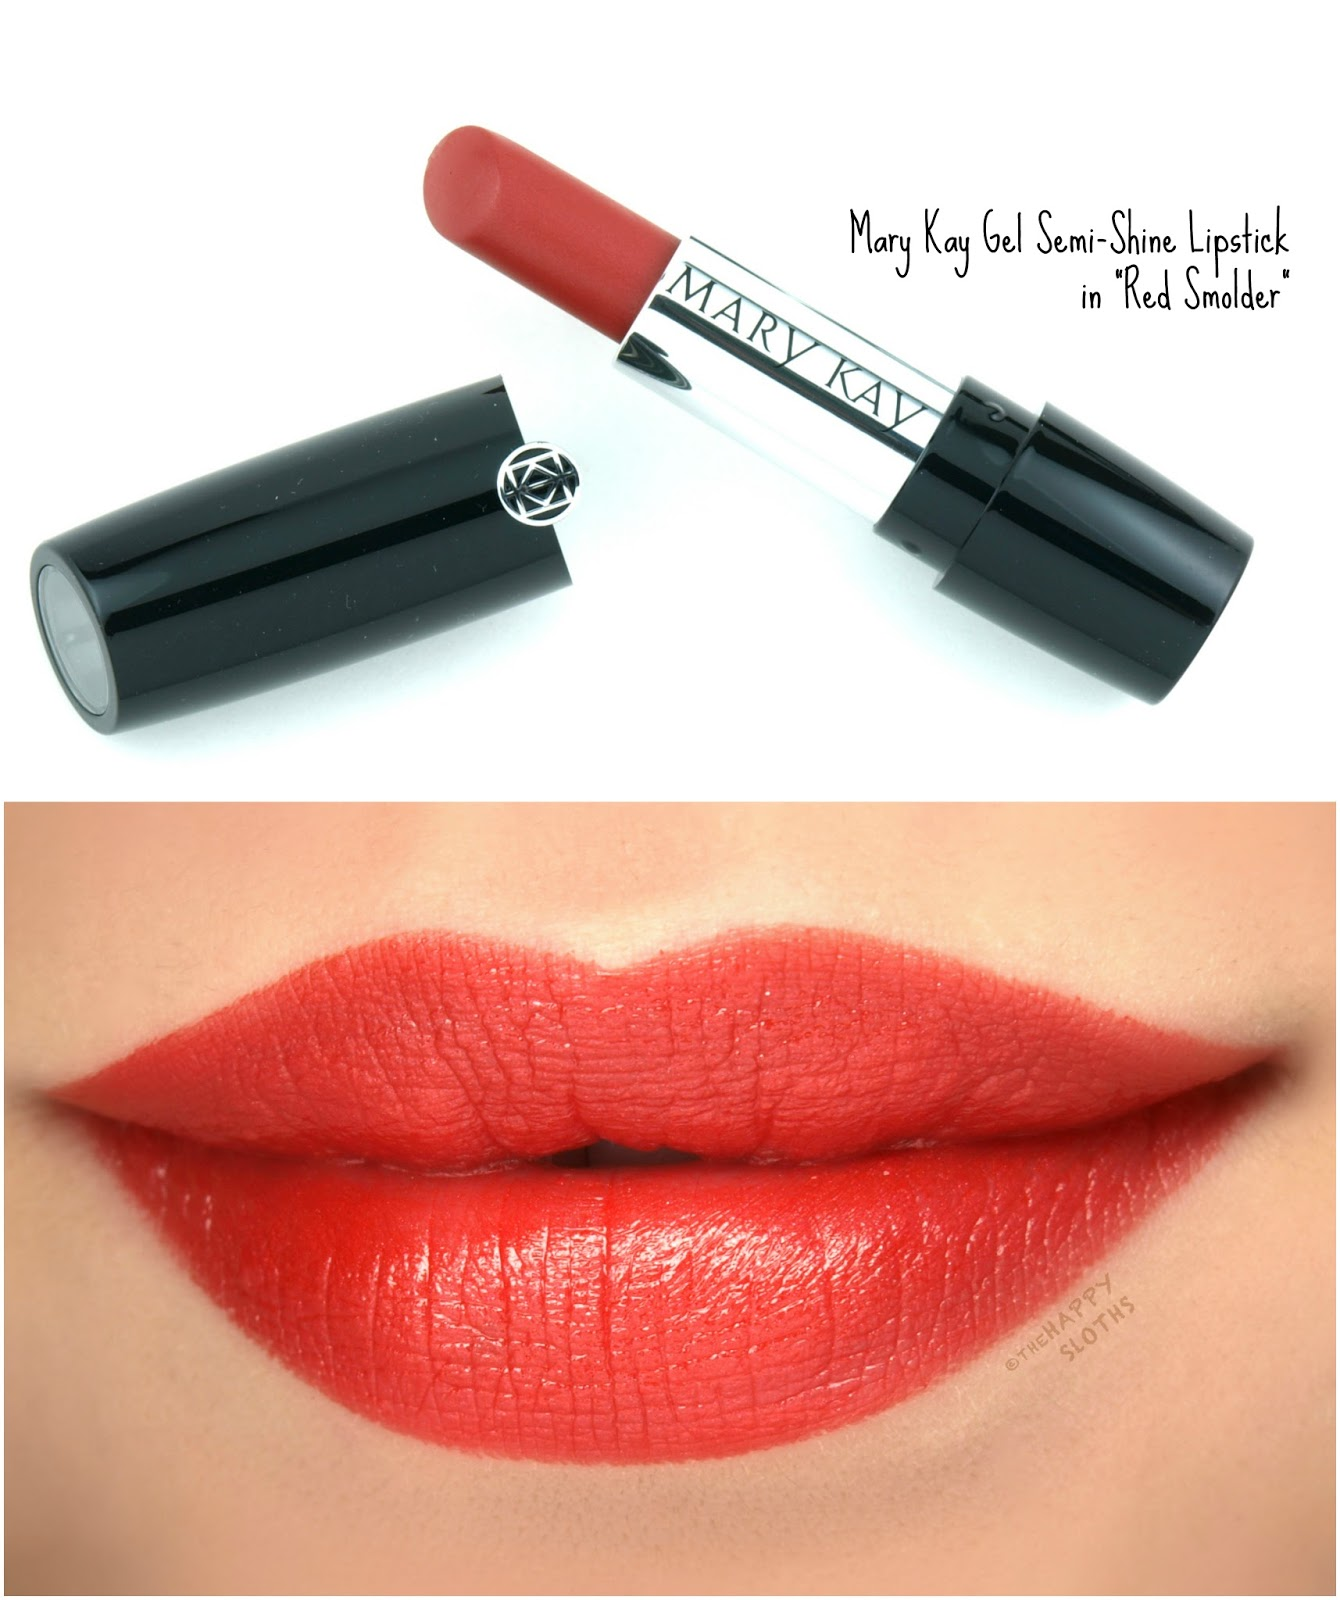 "Mary Kay Gel Semi-Shine Lipstick in ""Red Smolder"": Review and Swatches"